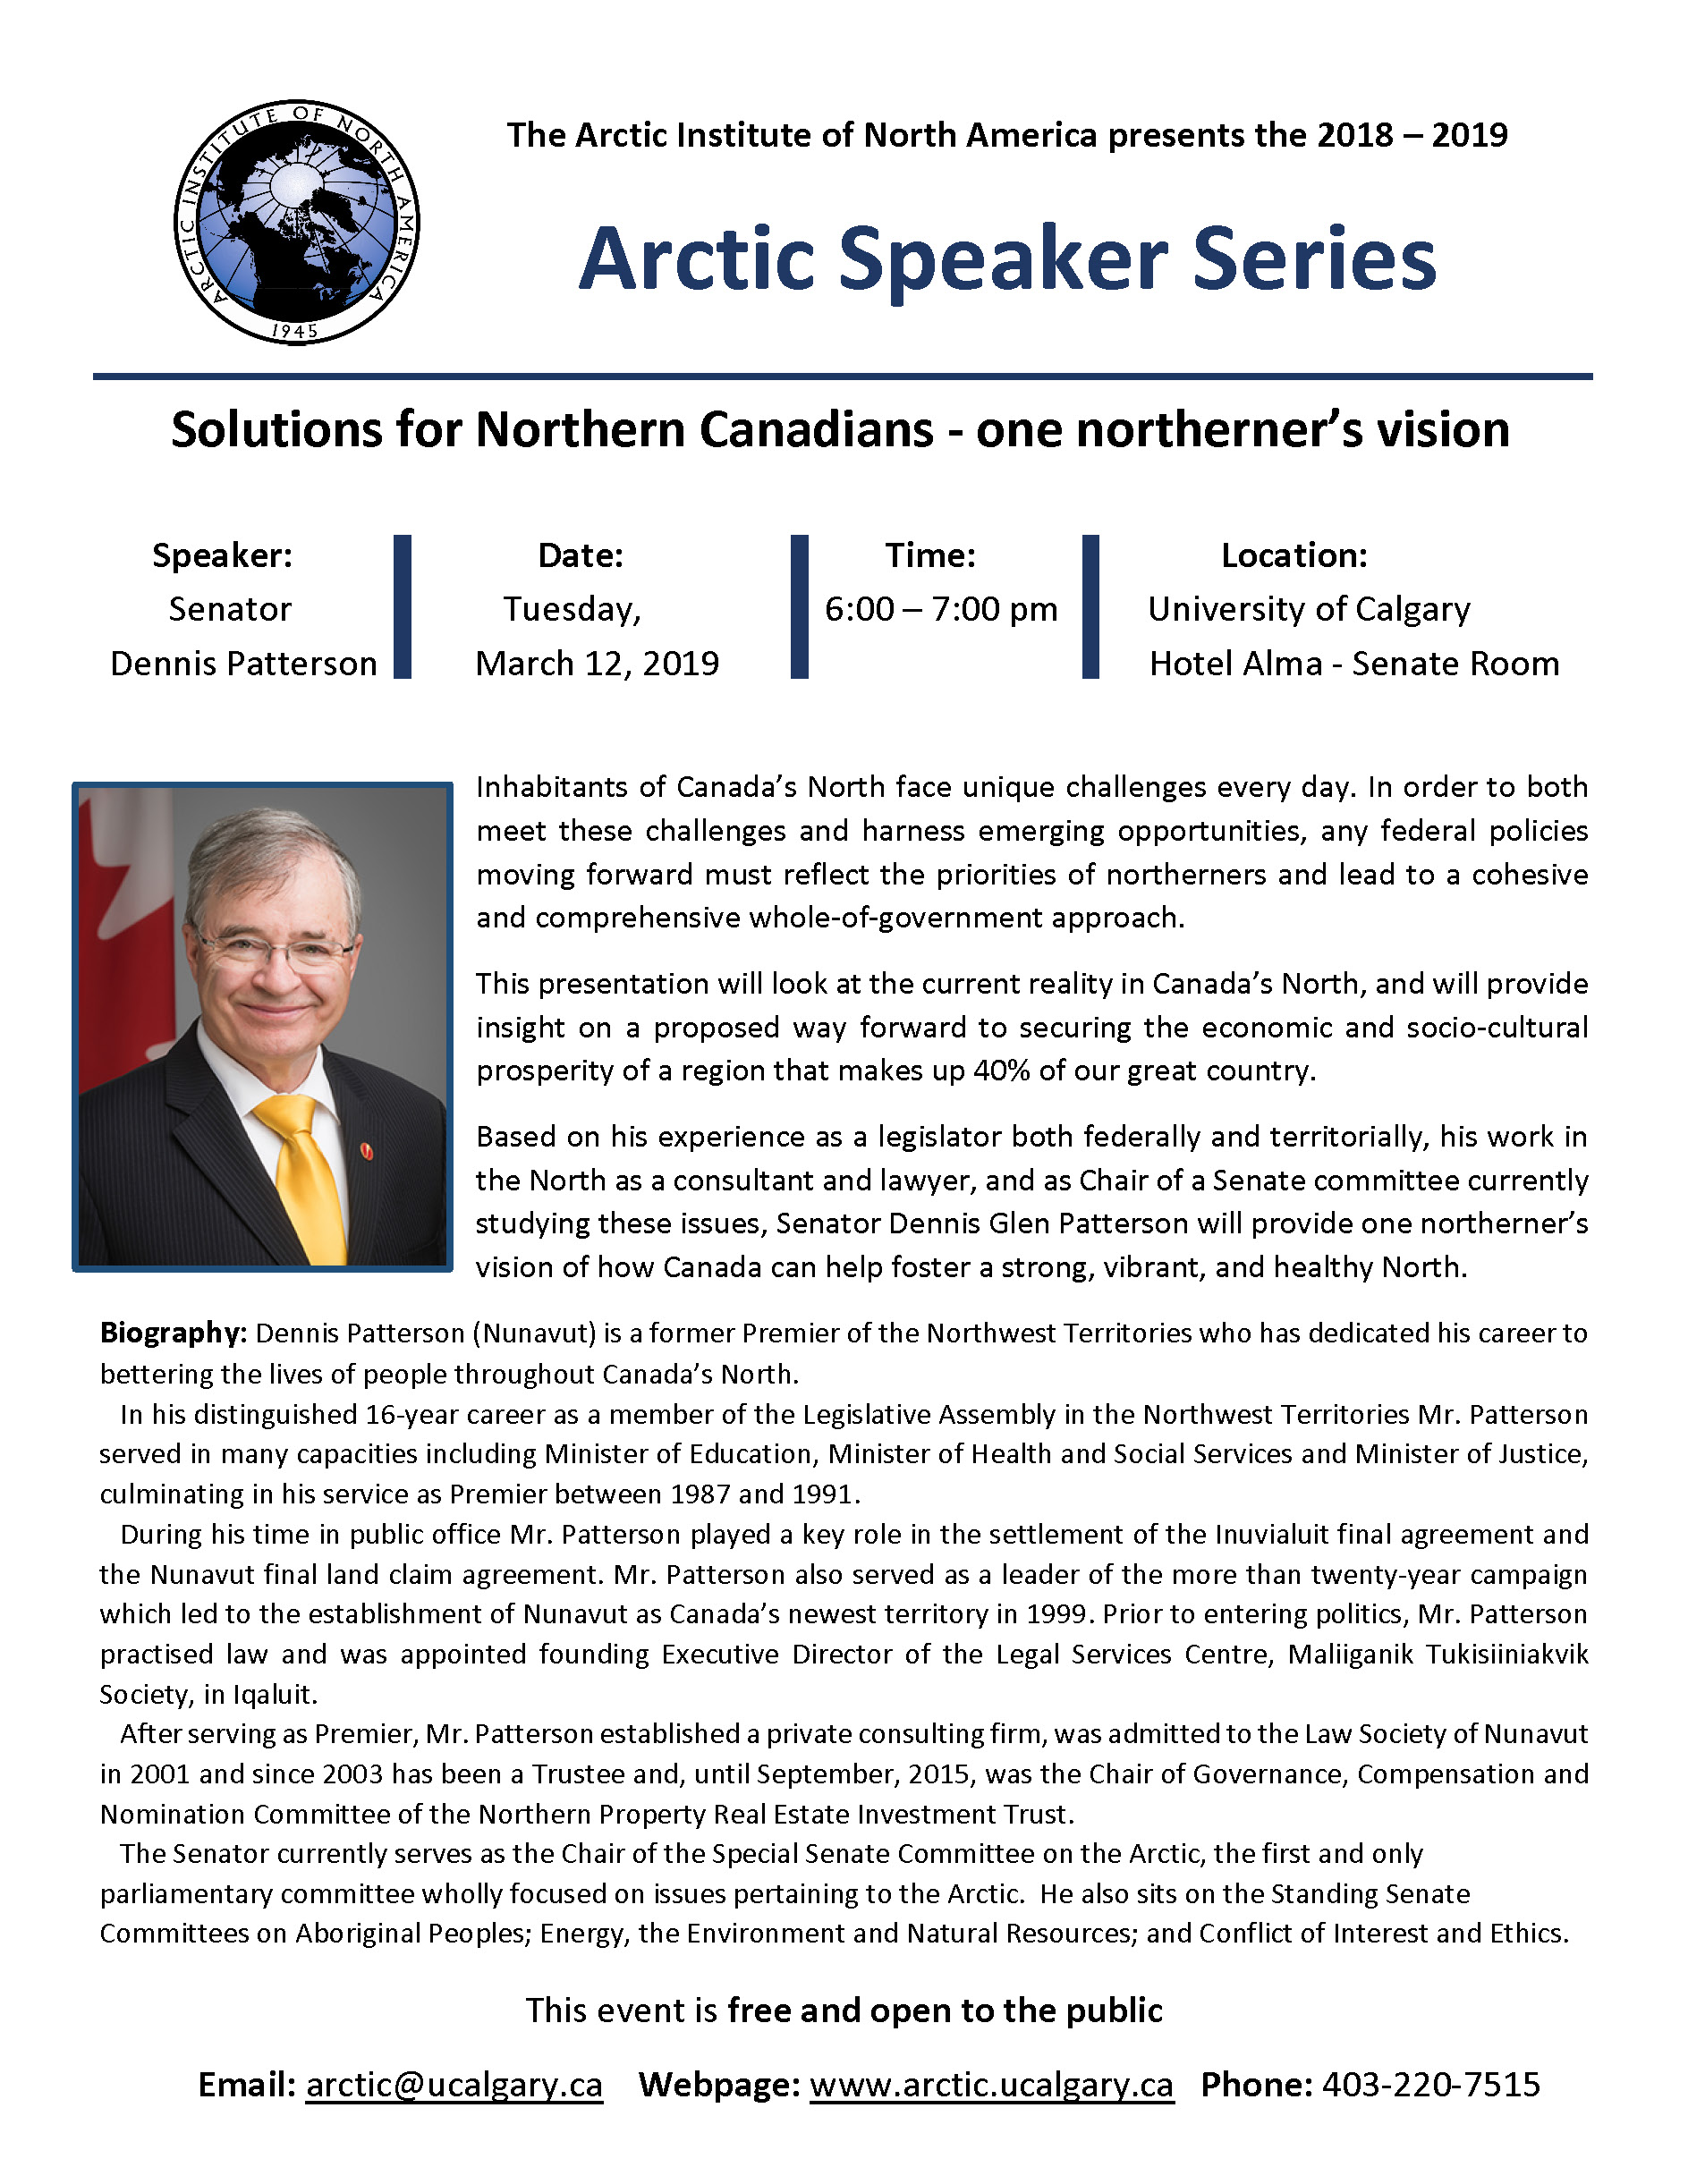 Senator Dennis Patterson Speaker Series Poster March 12, 2019